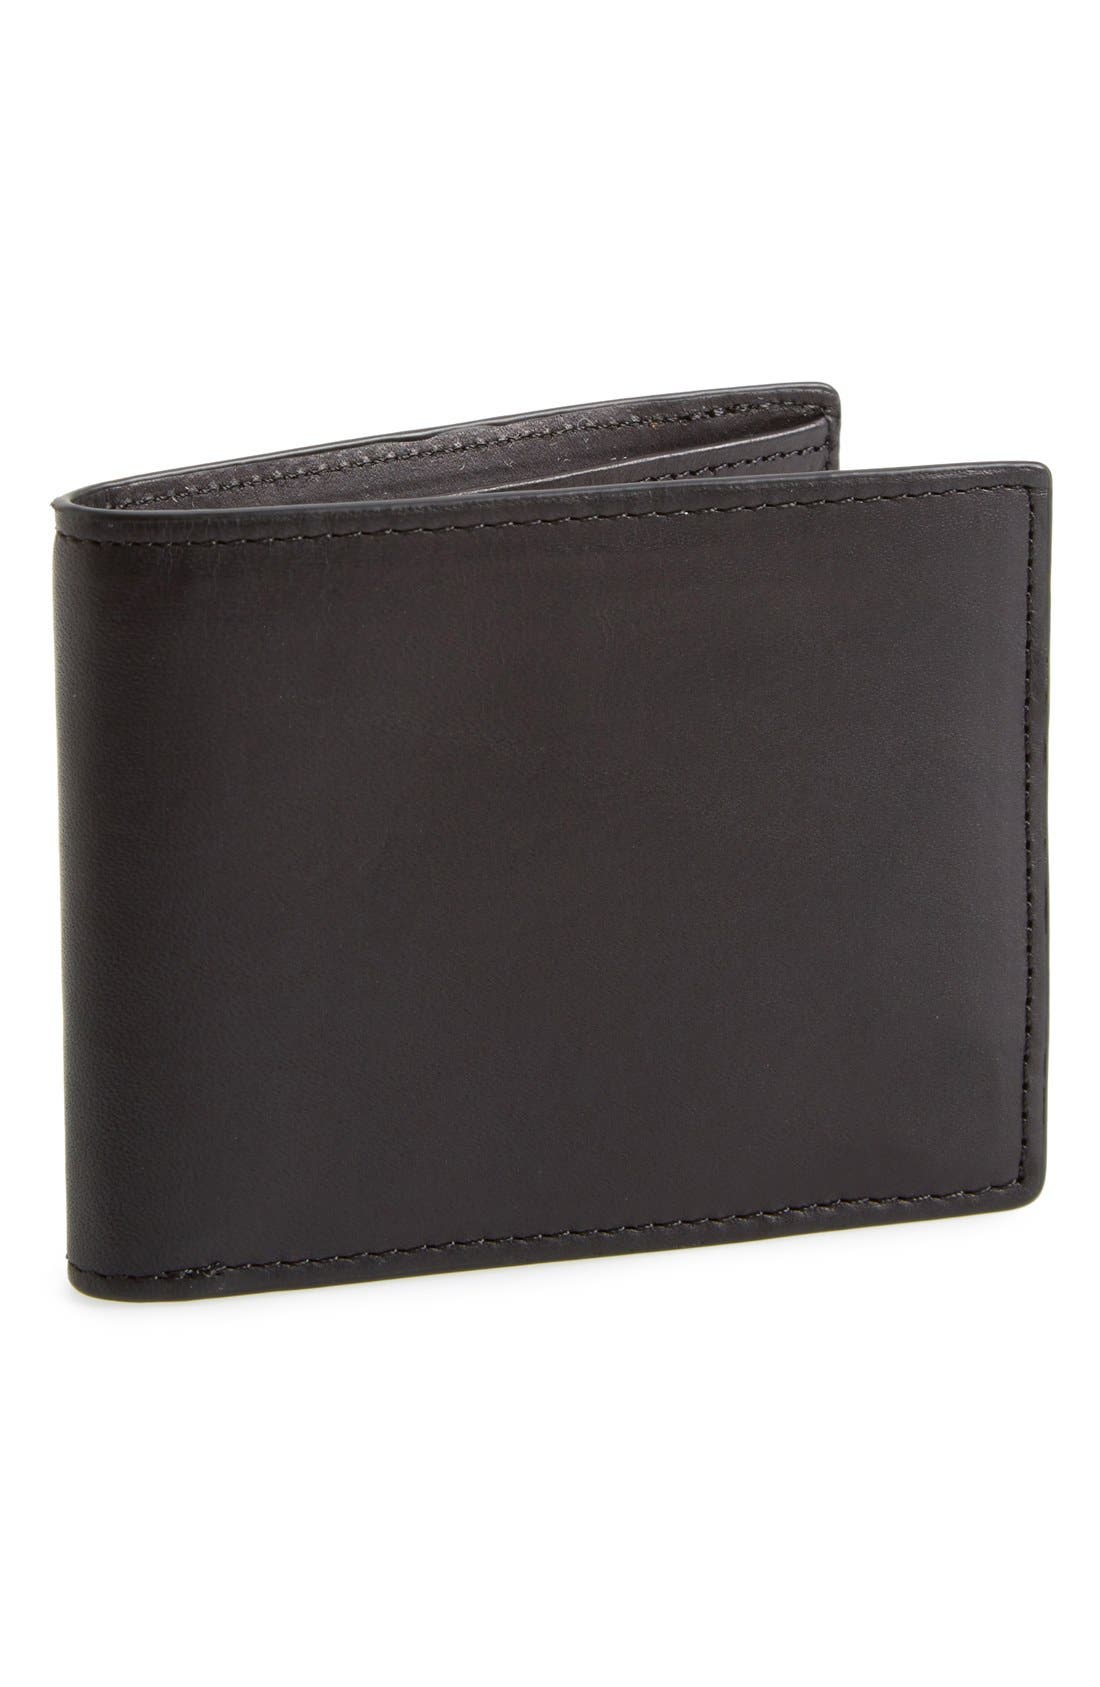 Alternate Image 1 Selected - rag & bone Hampshire Leather Bifold Wallet